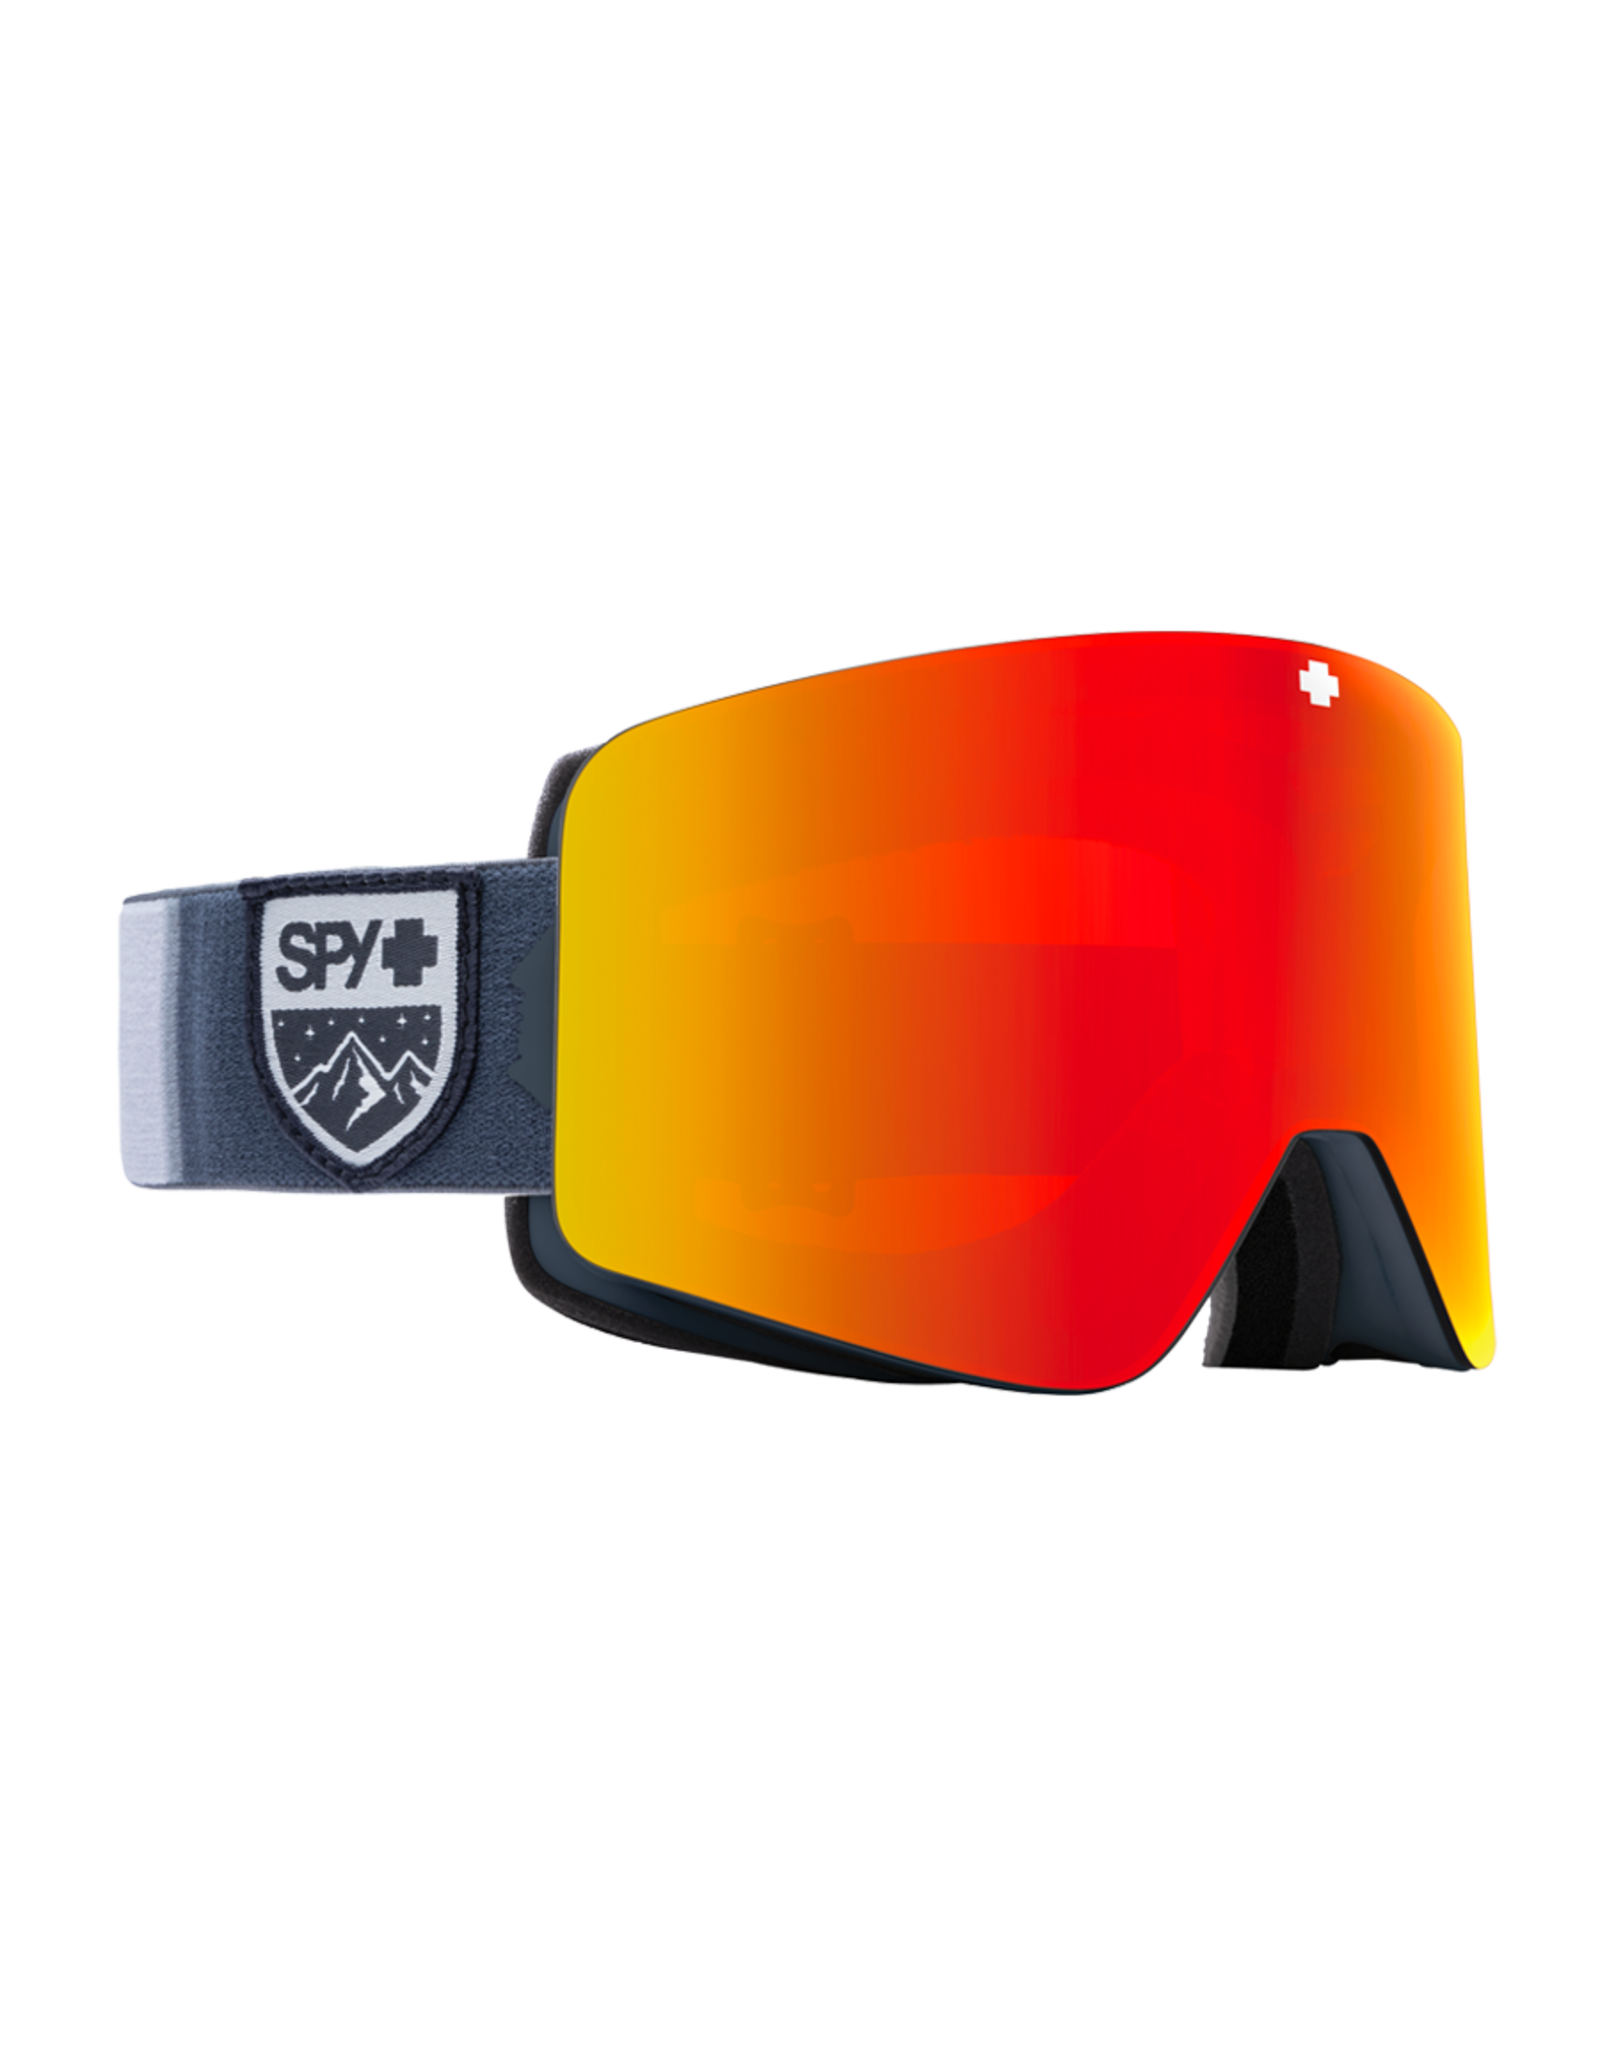 SPY Marauder Colorblock Gray w/HD Plus Bronze /Red Spectra Mirror and HD LL Yellow/Green Spectra Mirror